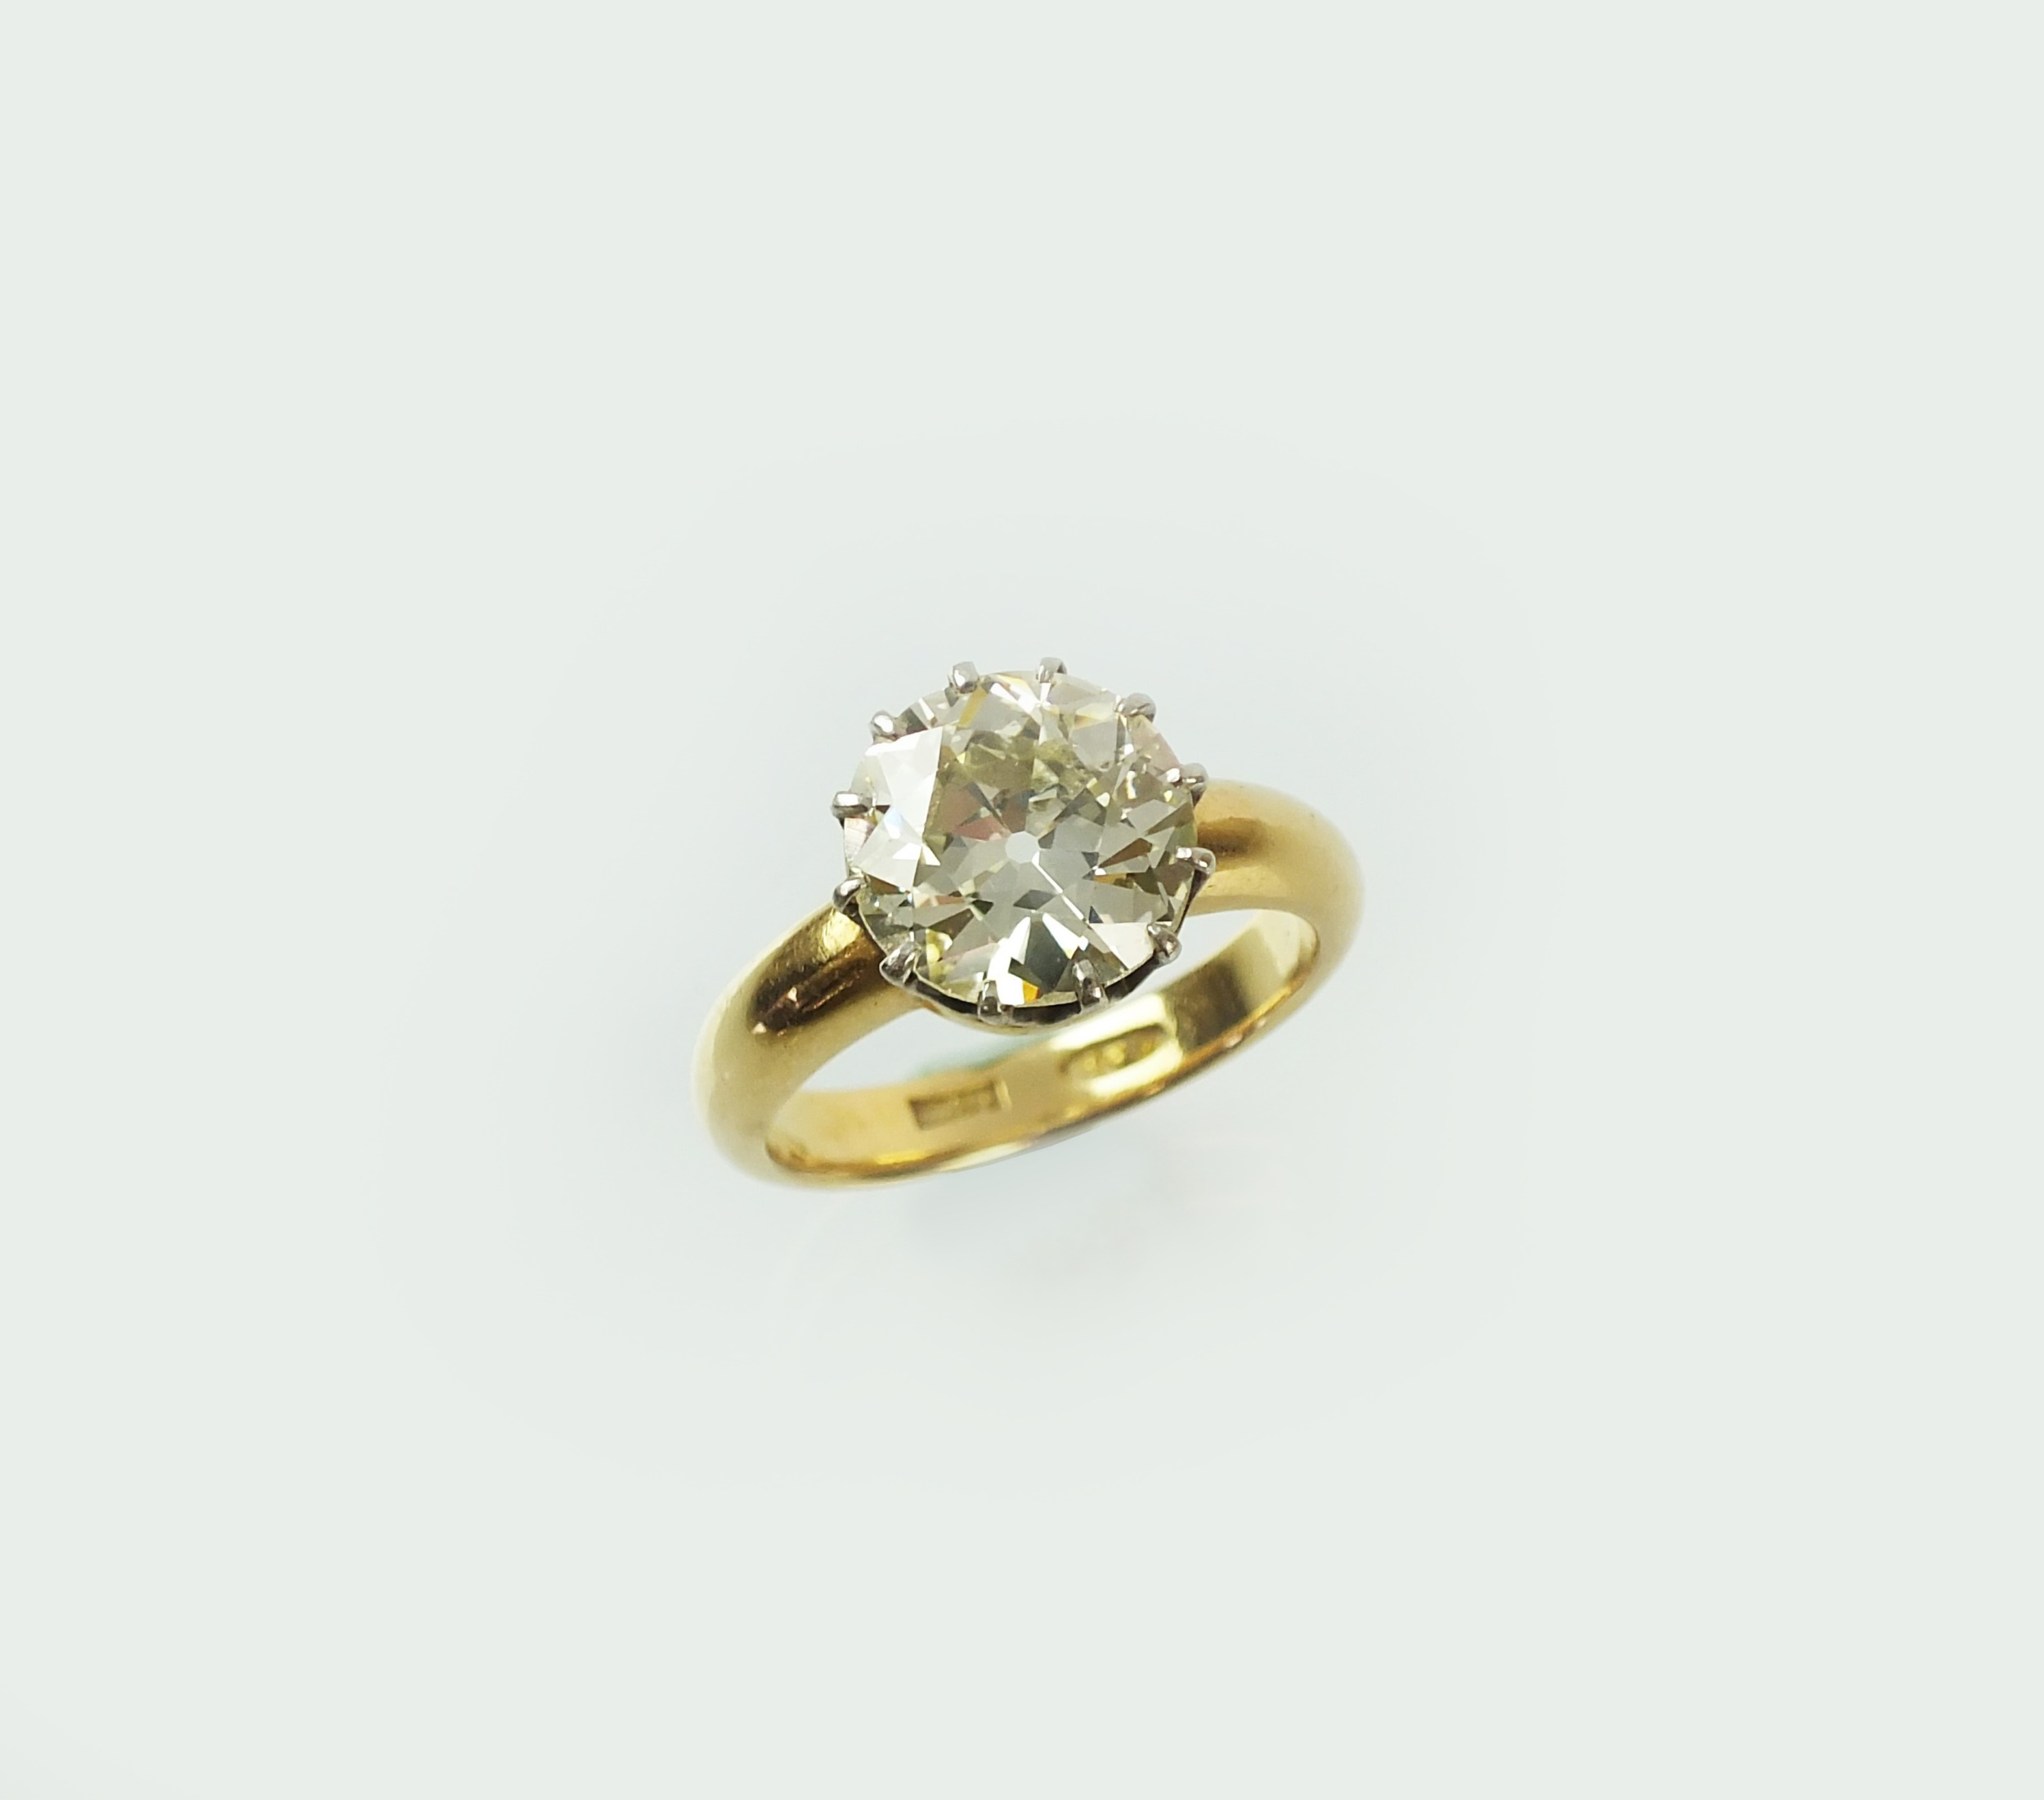 A single stone diamond ring, the brilliant cut diamond within twelve claw setting, mounted in white metal to yellow metal shank, stamped '18c', ring size R, the diamond weighs approx 4.10cts, colour estimated to be K/L, clarity estimated to be VS1-VS2, weight approx 8.1g  Sold for £13,500